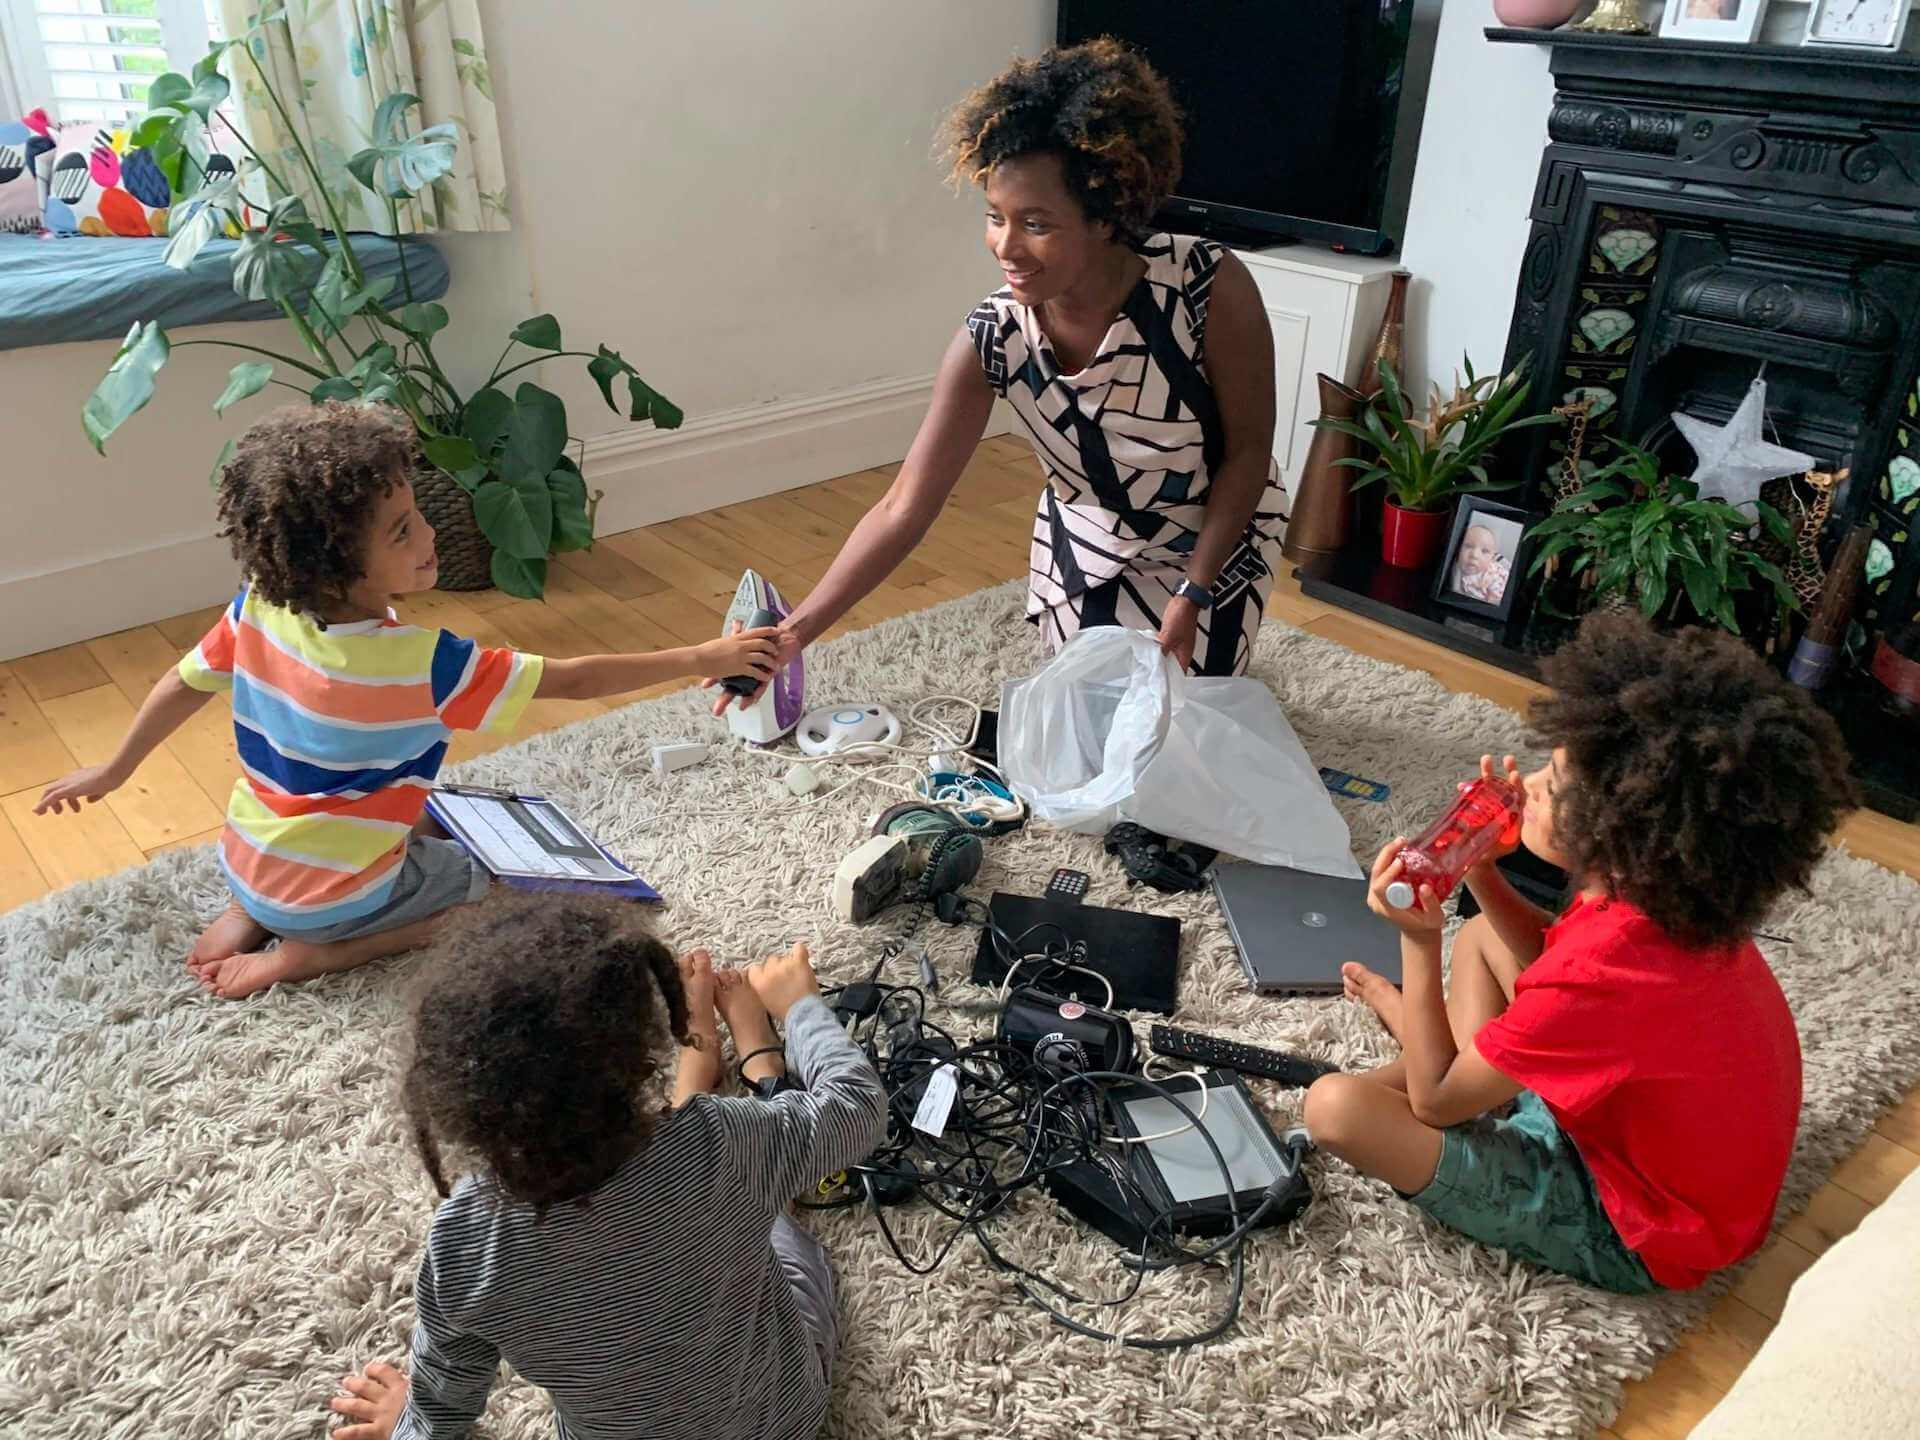 family sorting electricals for recycling